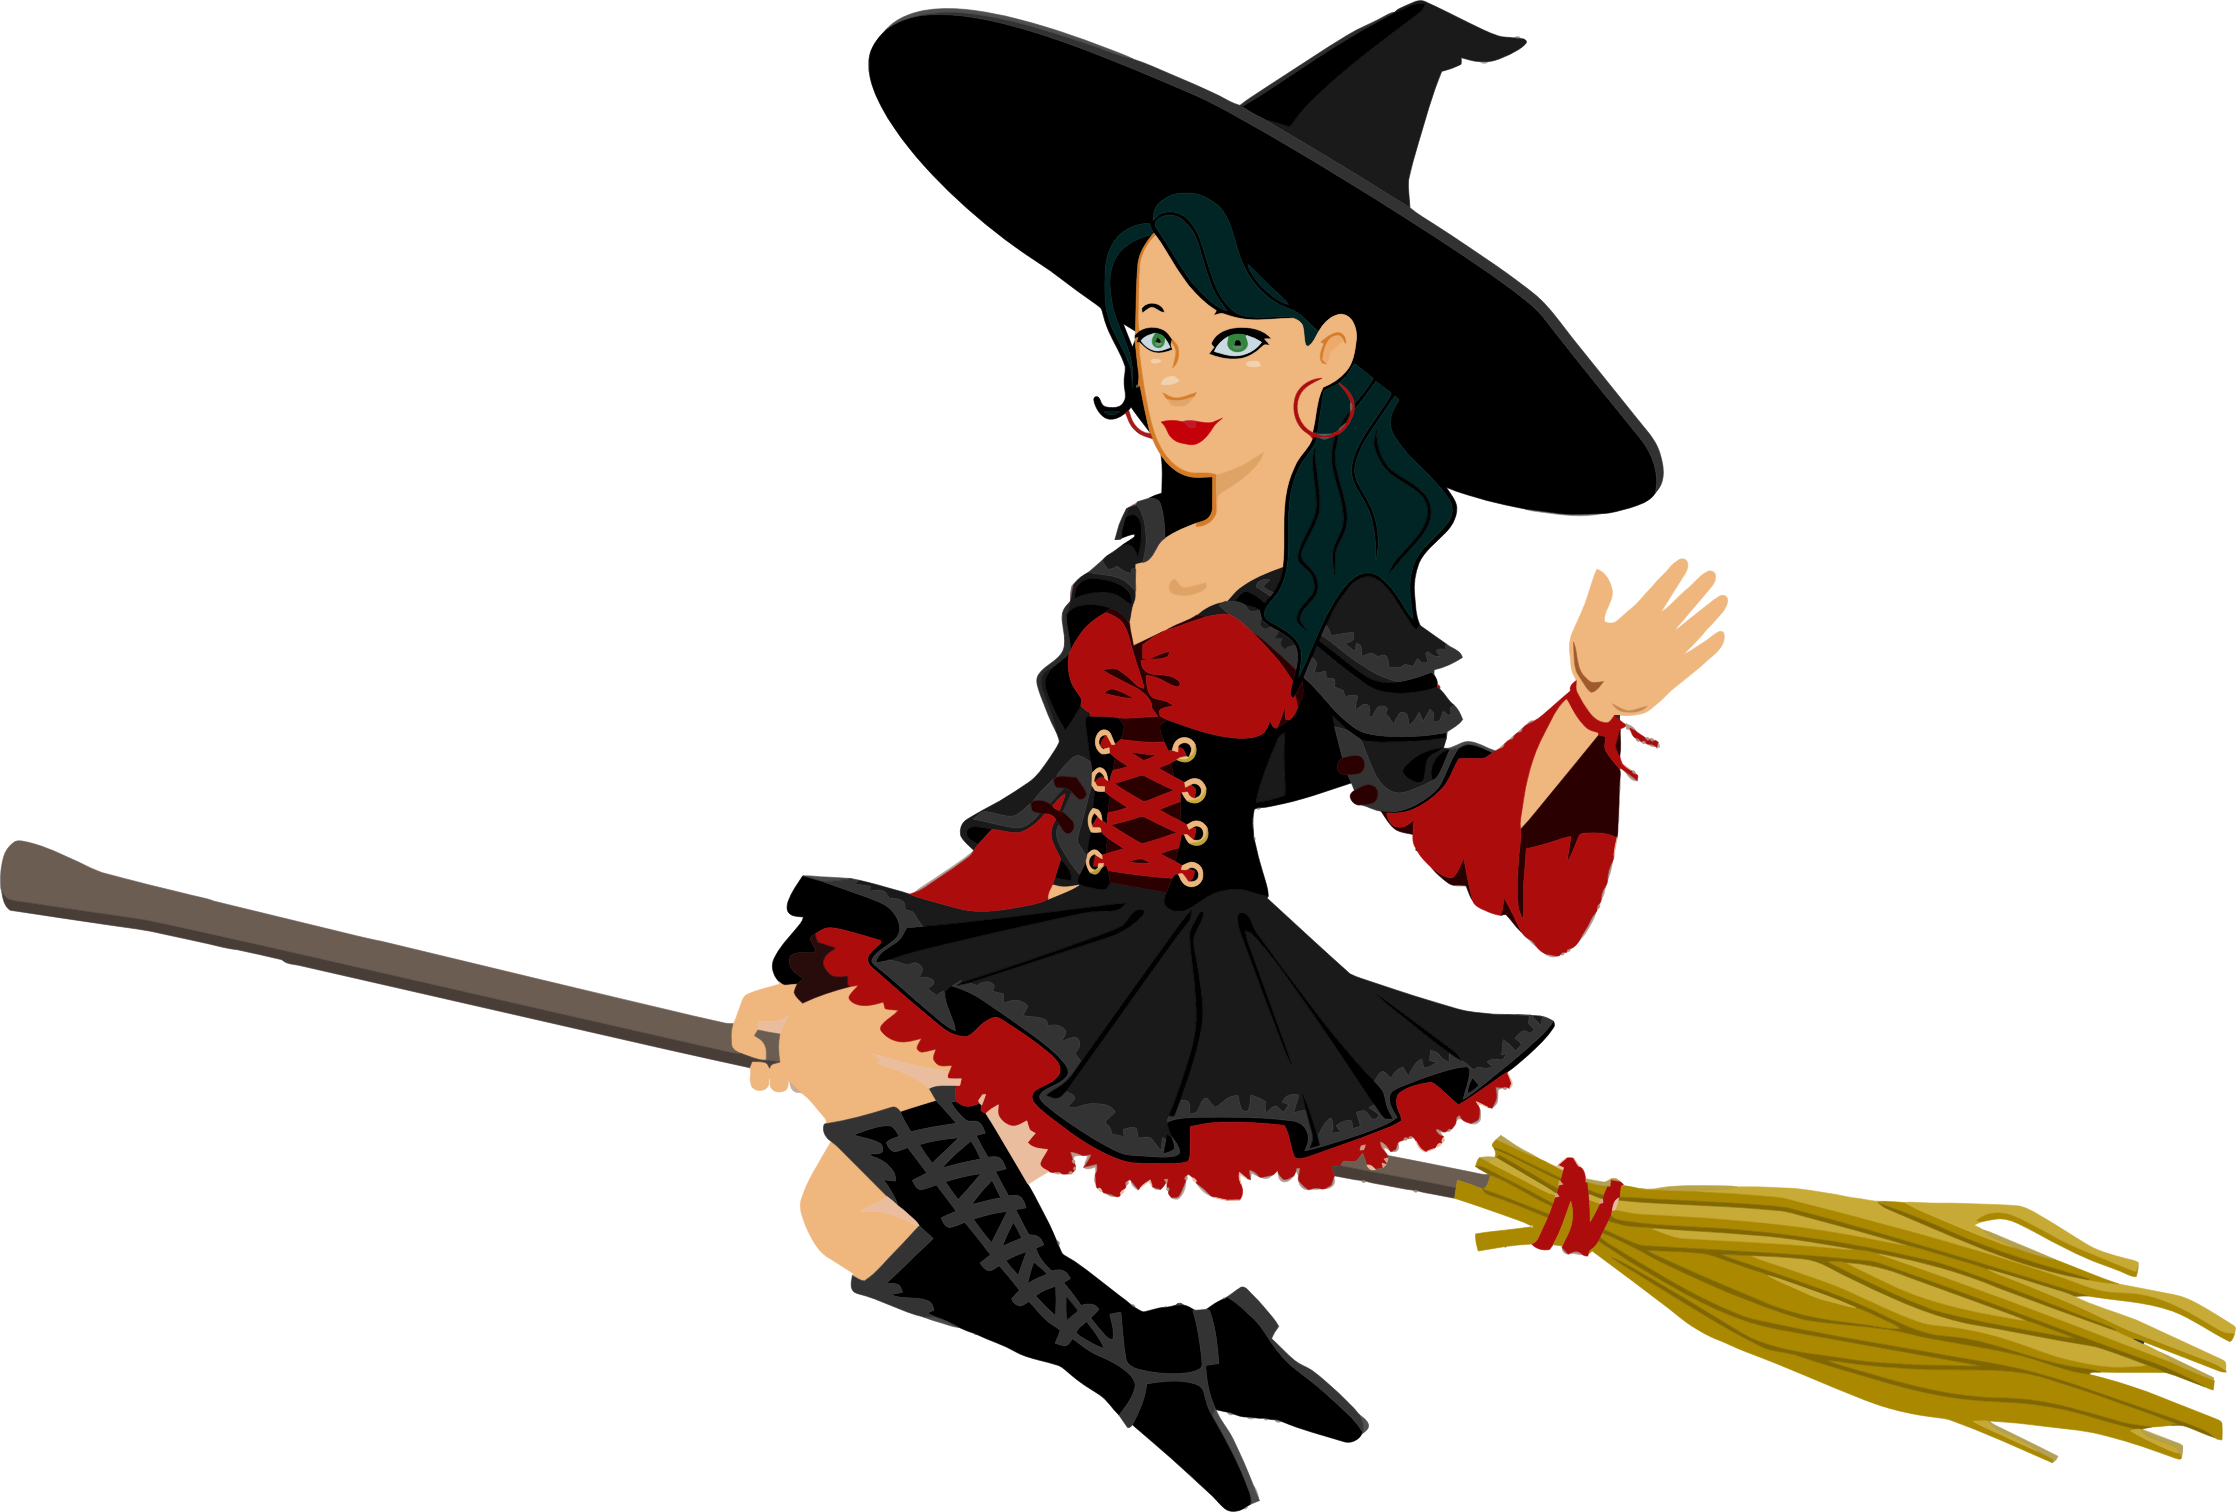 Big image png. Witch clipart flying witch